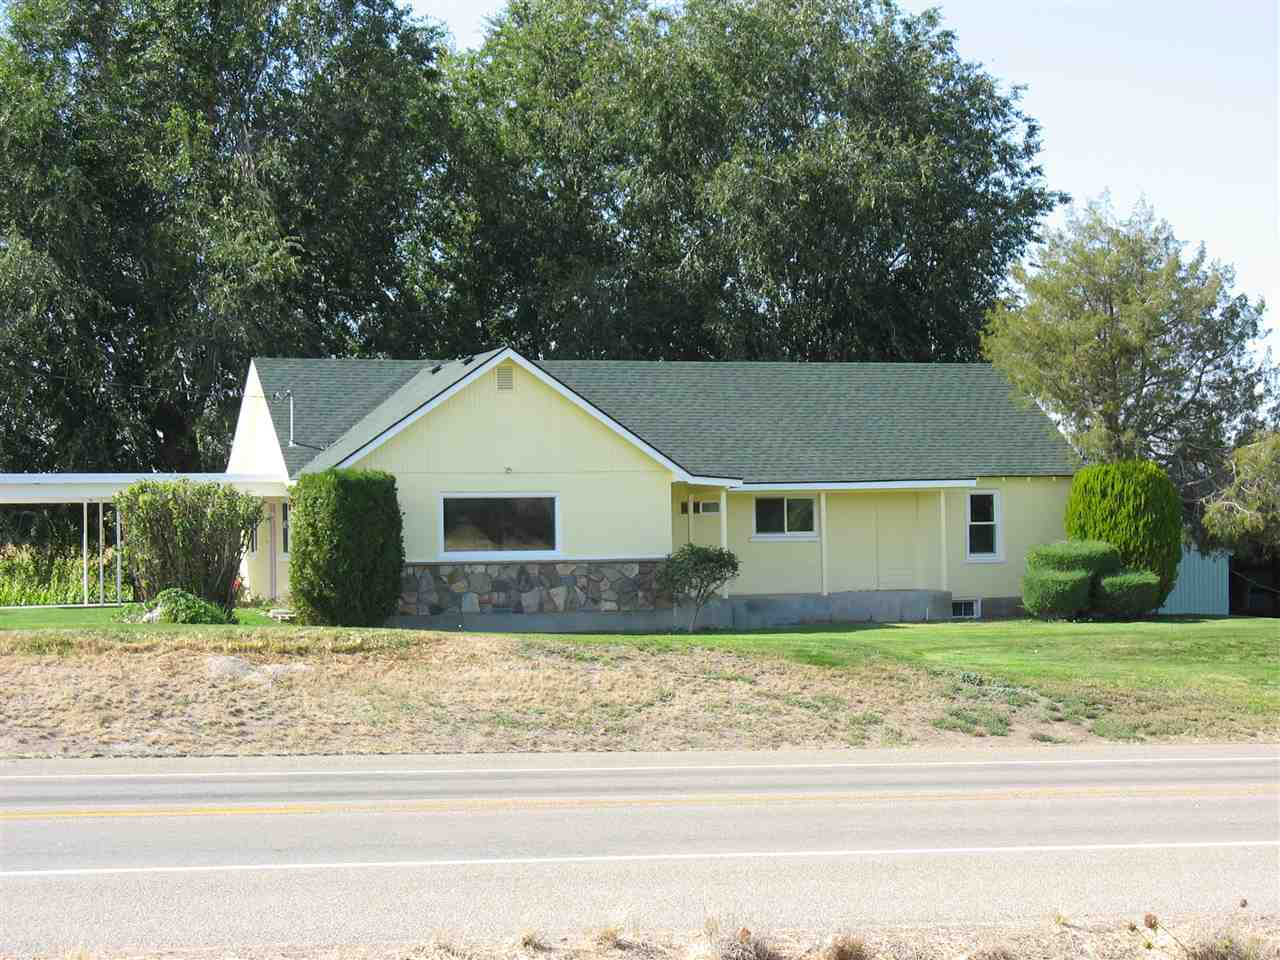 Farm / Ranch for Sale at 32925 Highway 95 Parma, Idaho 83660